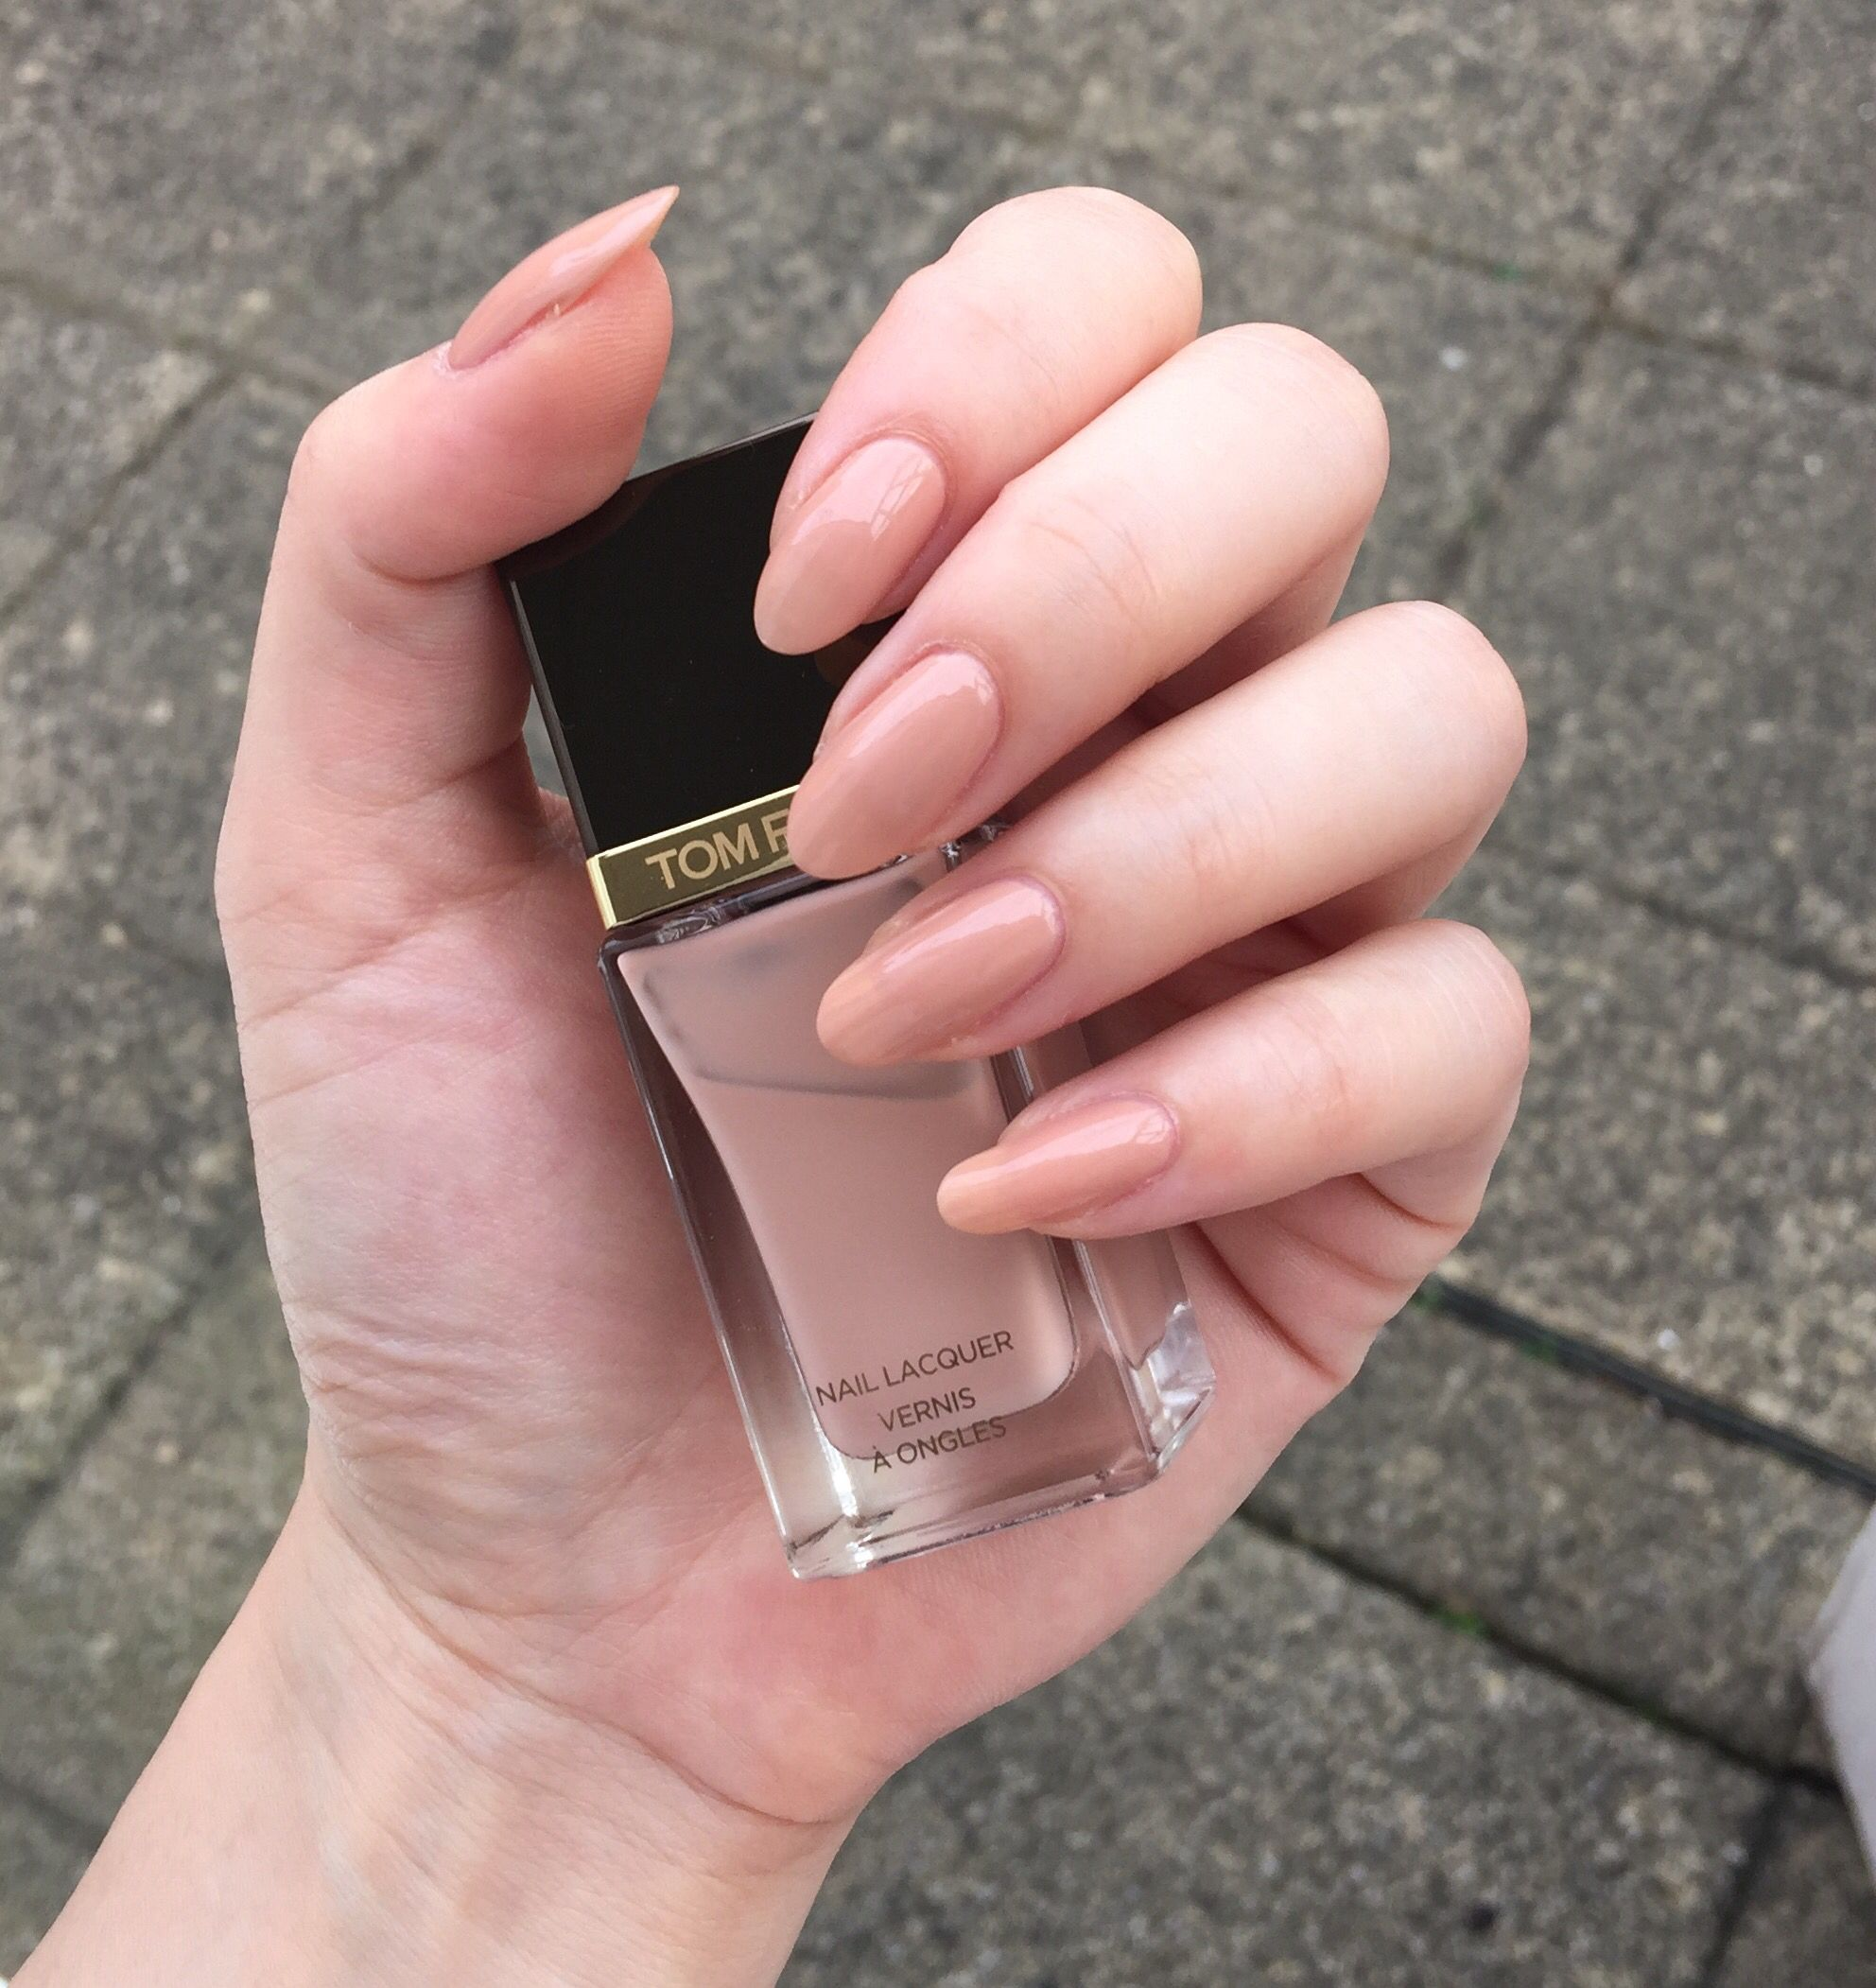 tom ford toasted sugar. oval nails